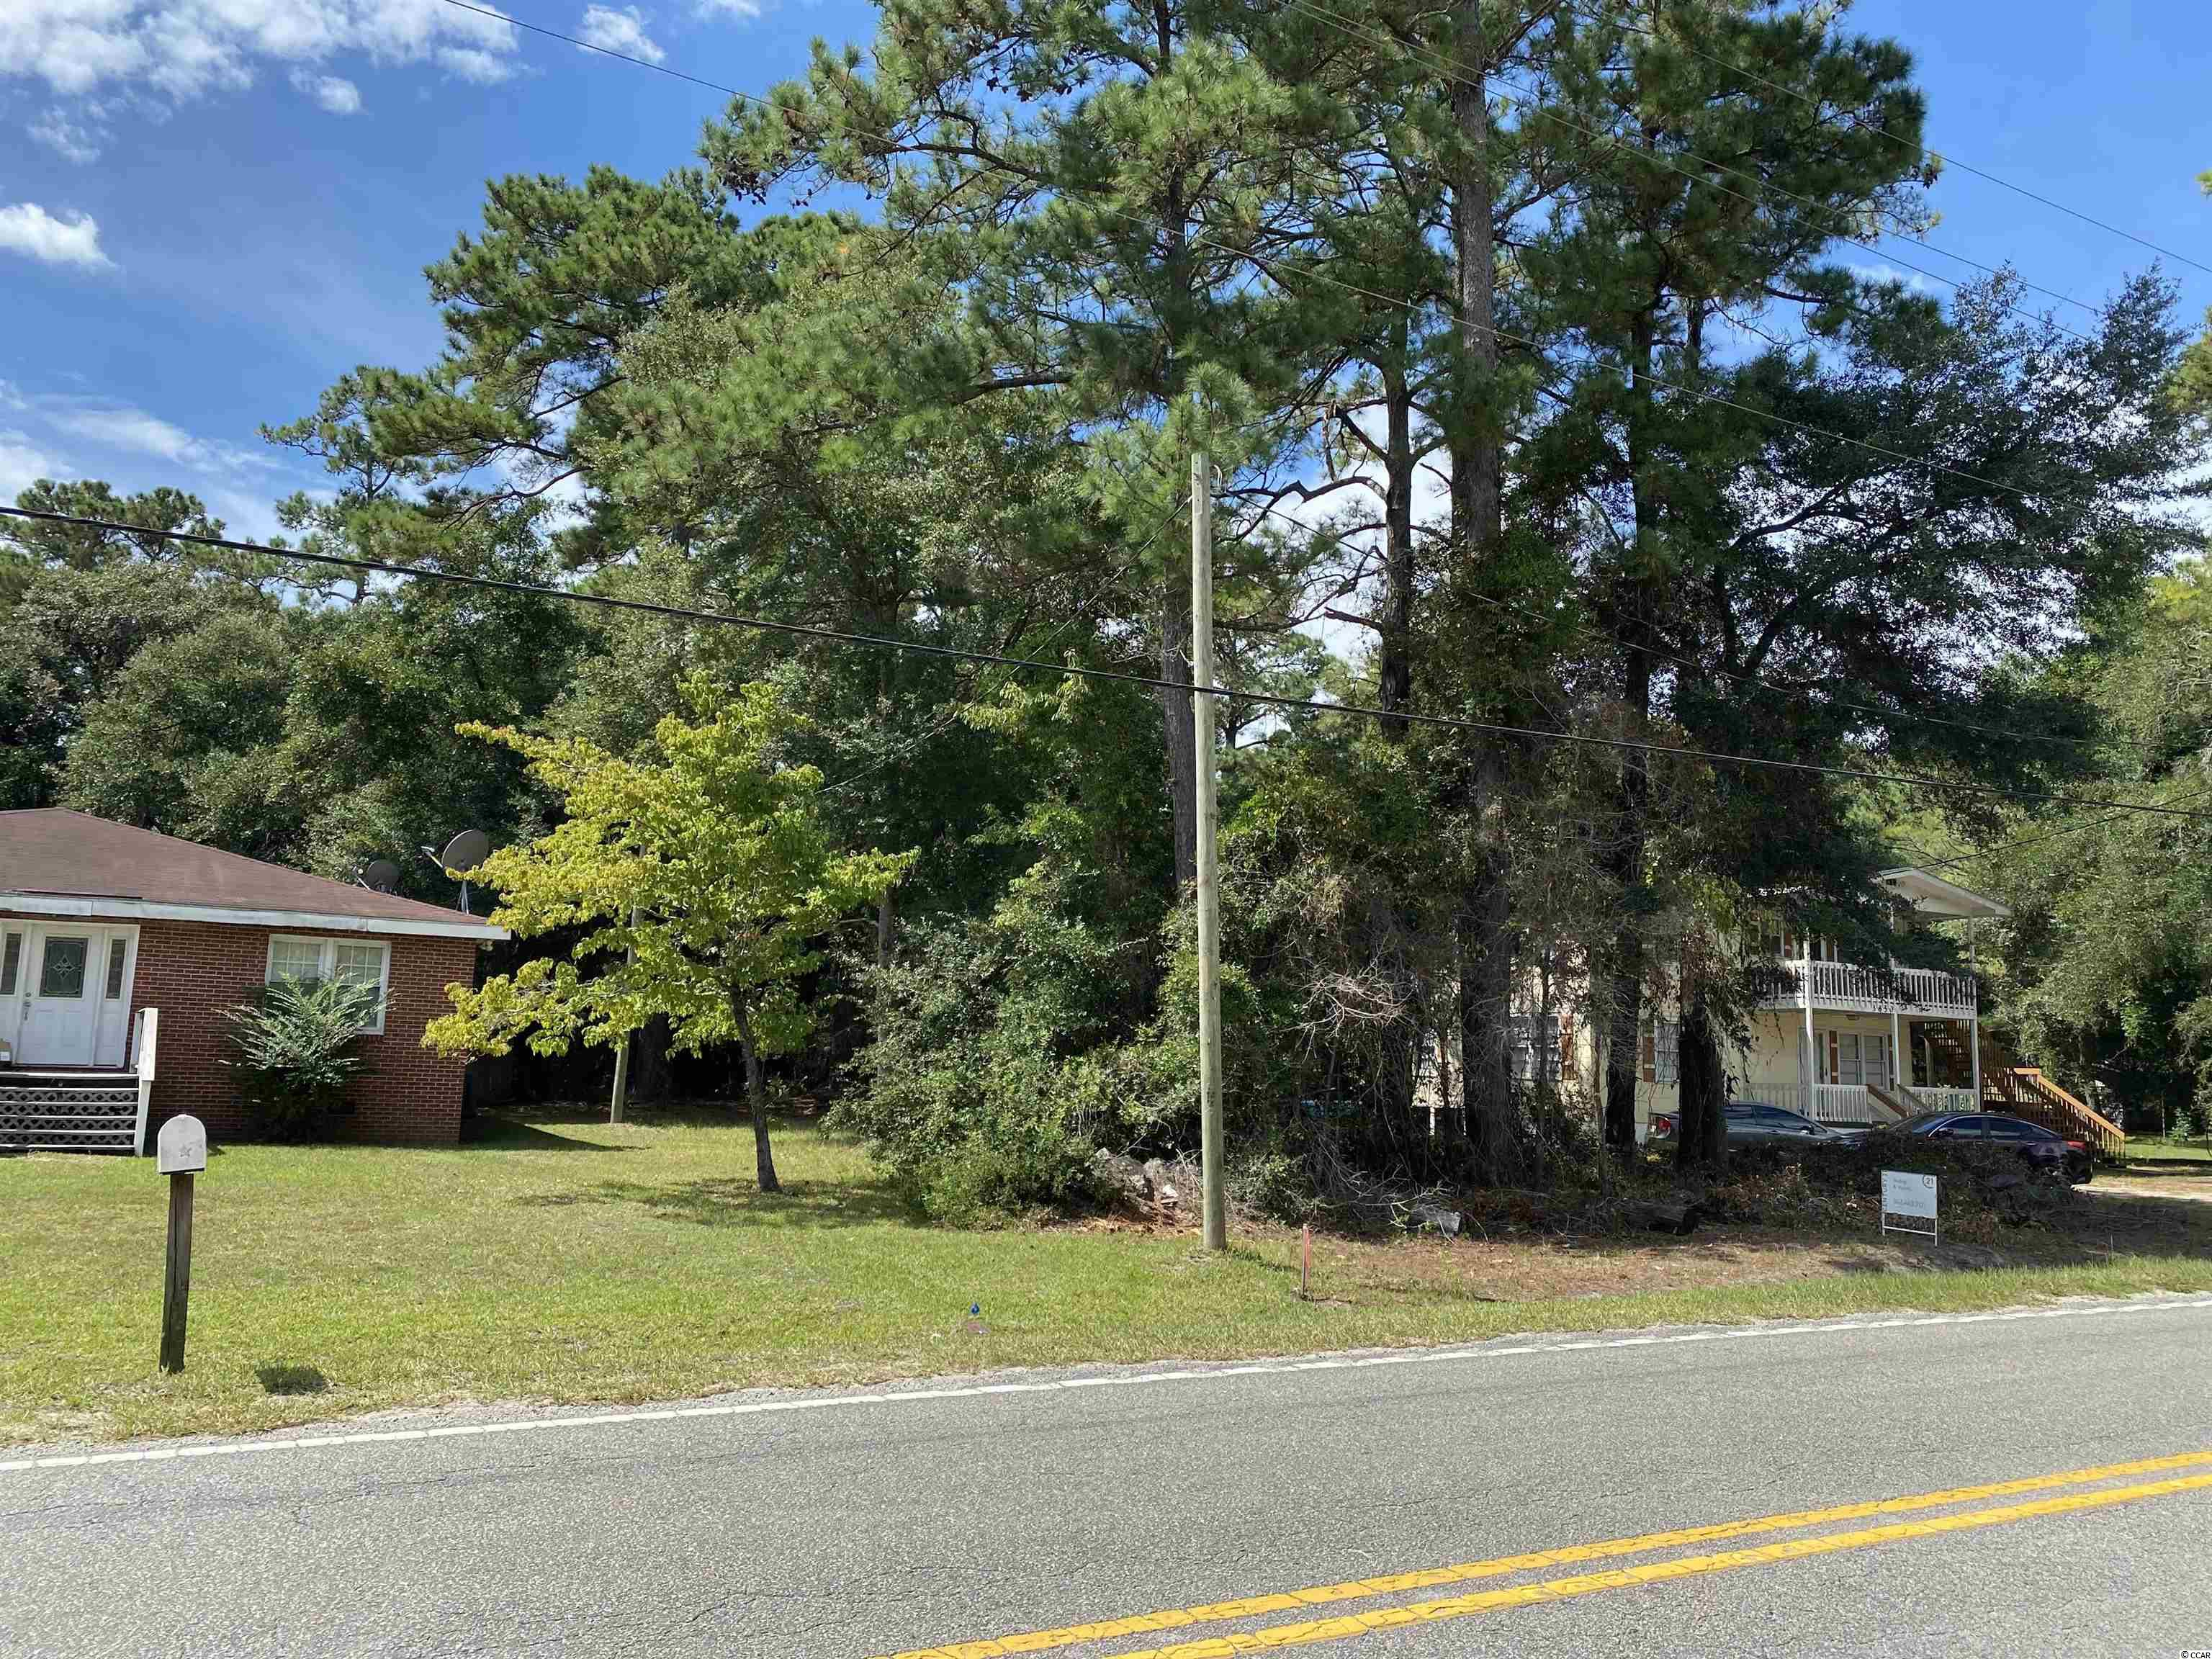 Great residential lot located on Highway 50 in Little River. No HOA, build your dream home or bring manufacture house there! Survey is available in associated docs! Close to shops, dining, entertainment, night life, golf, casino boats, marinas, Intracoastal Waterway, Cherry Grove Beach and everything North Myrtle Beach has to offer! Your time has come!